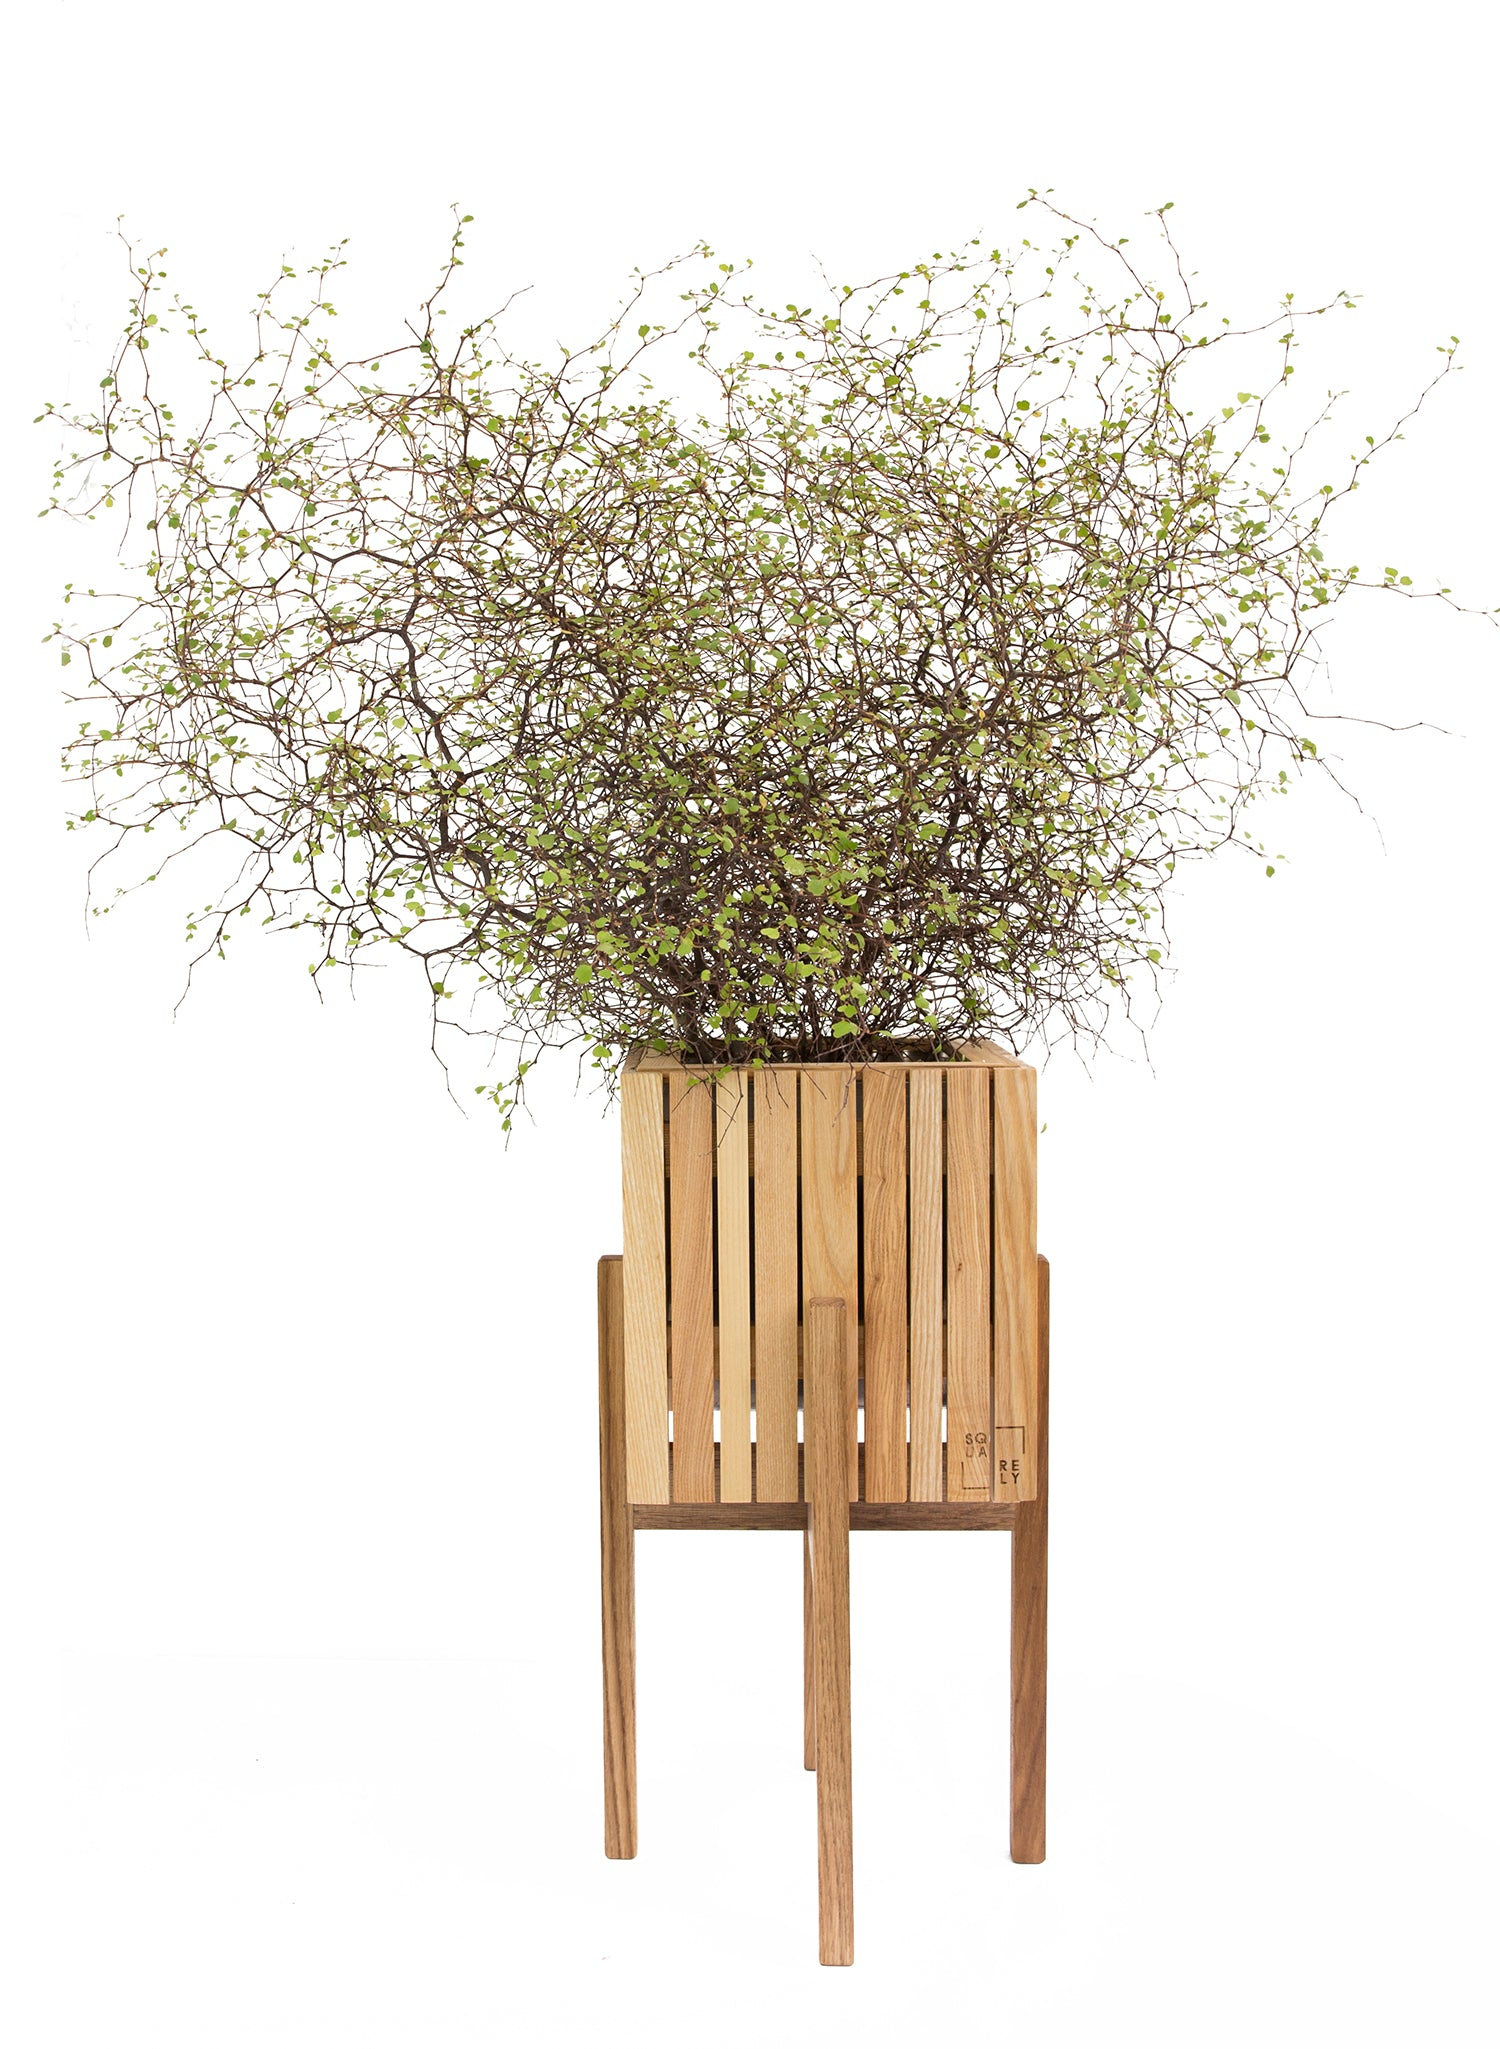 "SQUARELY's wooden design planter ""GrowOn + StandOn Natural Ash"" whit a plant on white background. GrowOn is SQUARELY's smaller, wooden, sustainable design planter with self-watering system."